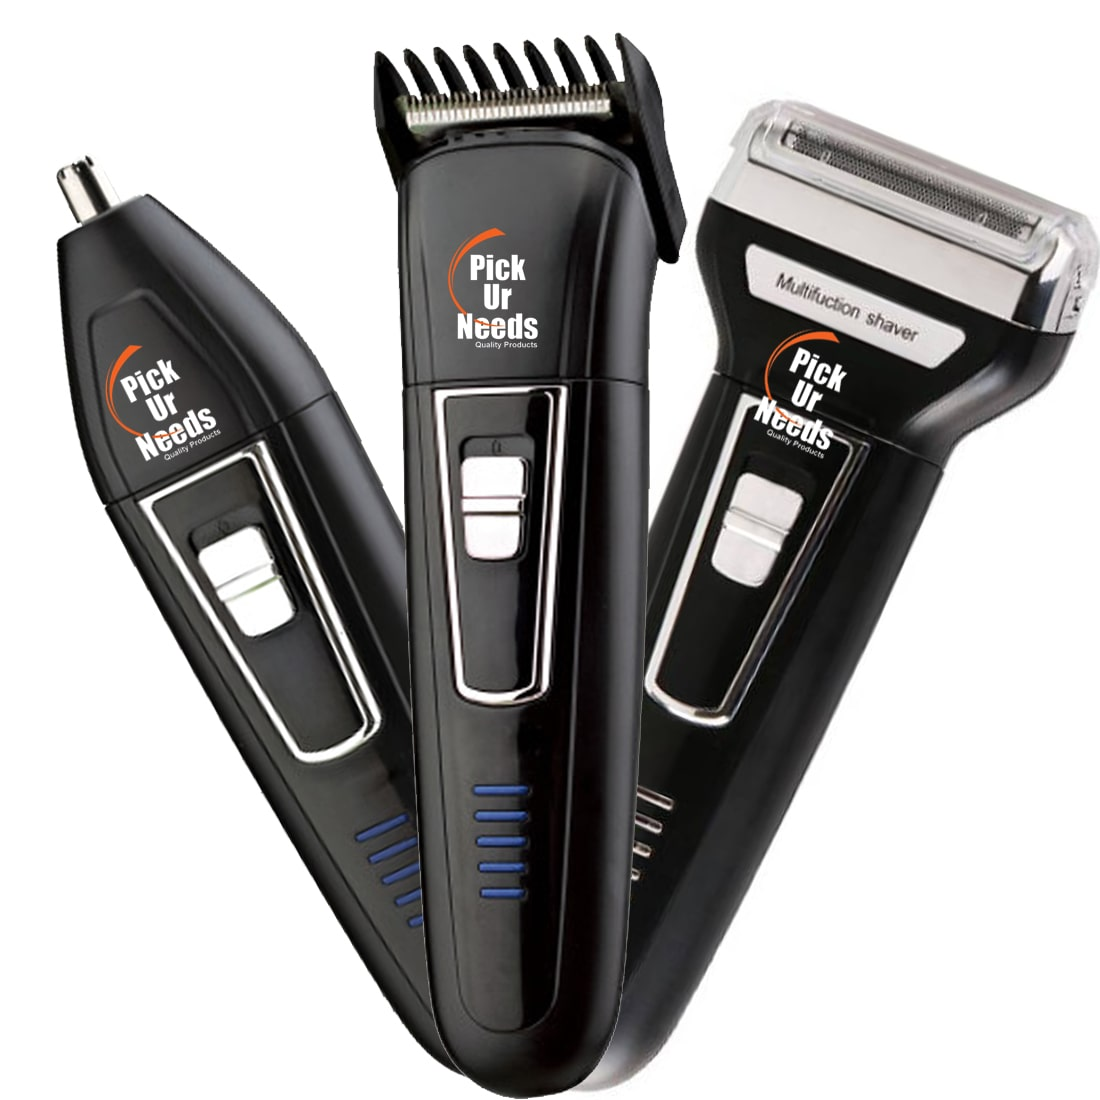 Pick Ur Needs Professional Shaver and 3 in 1 Beard, Nose and...